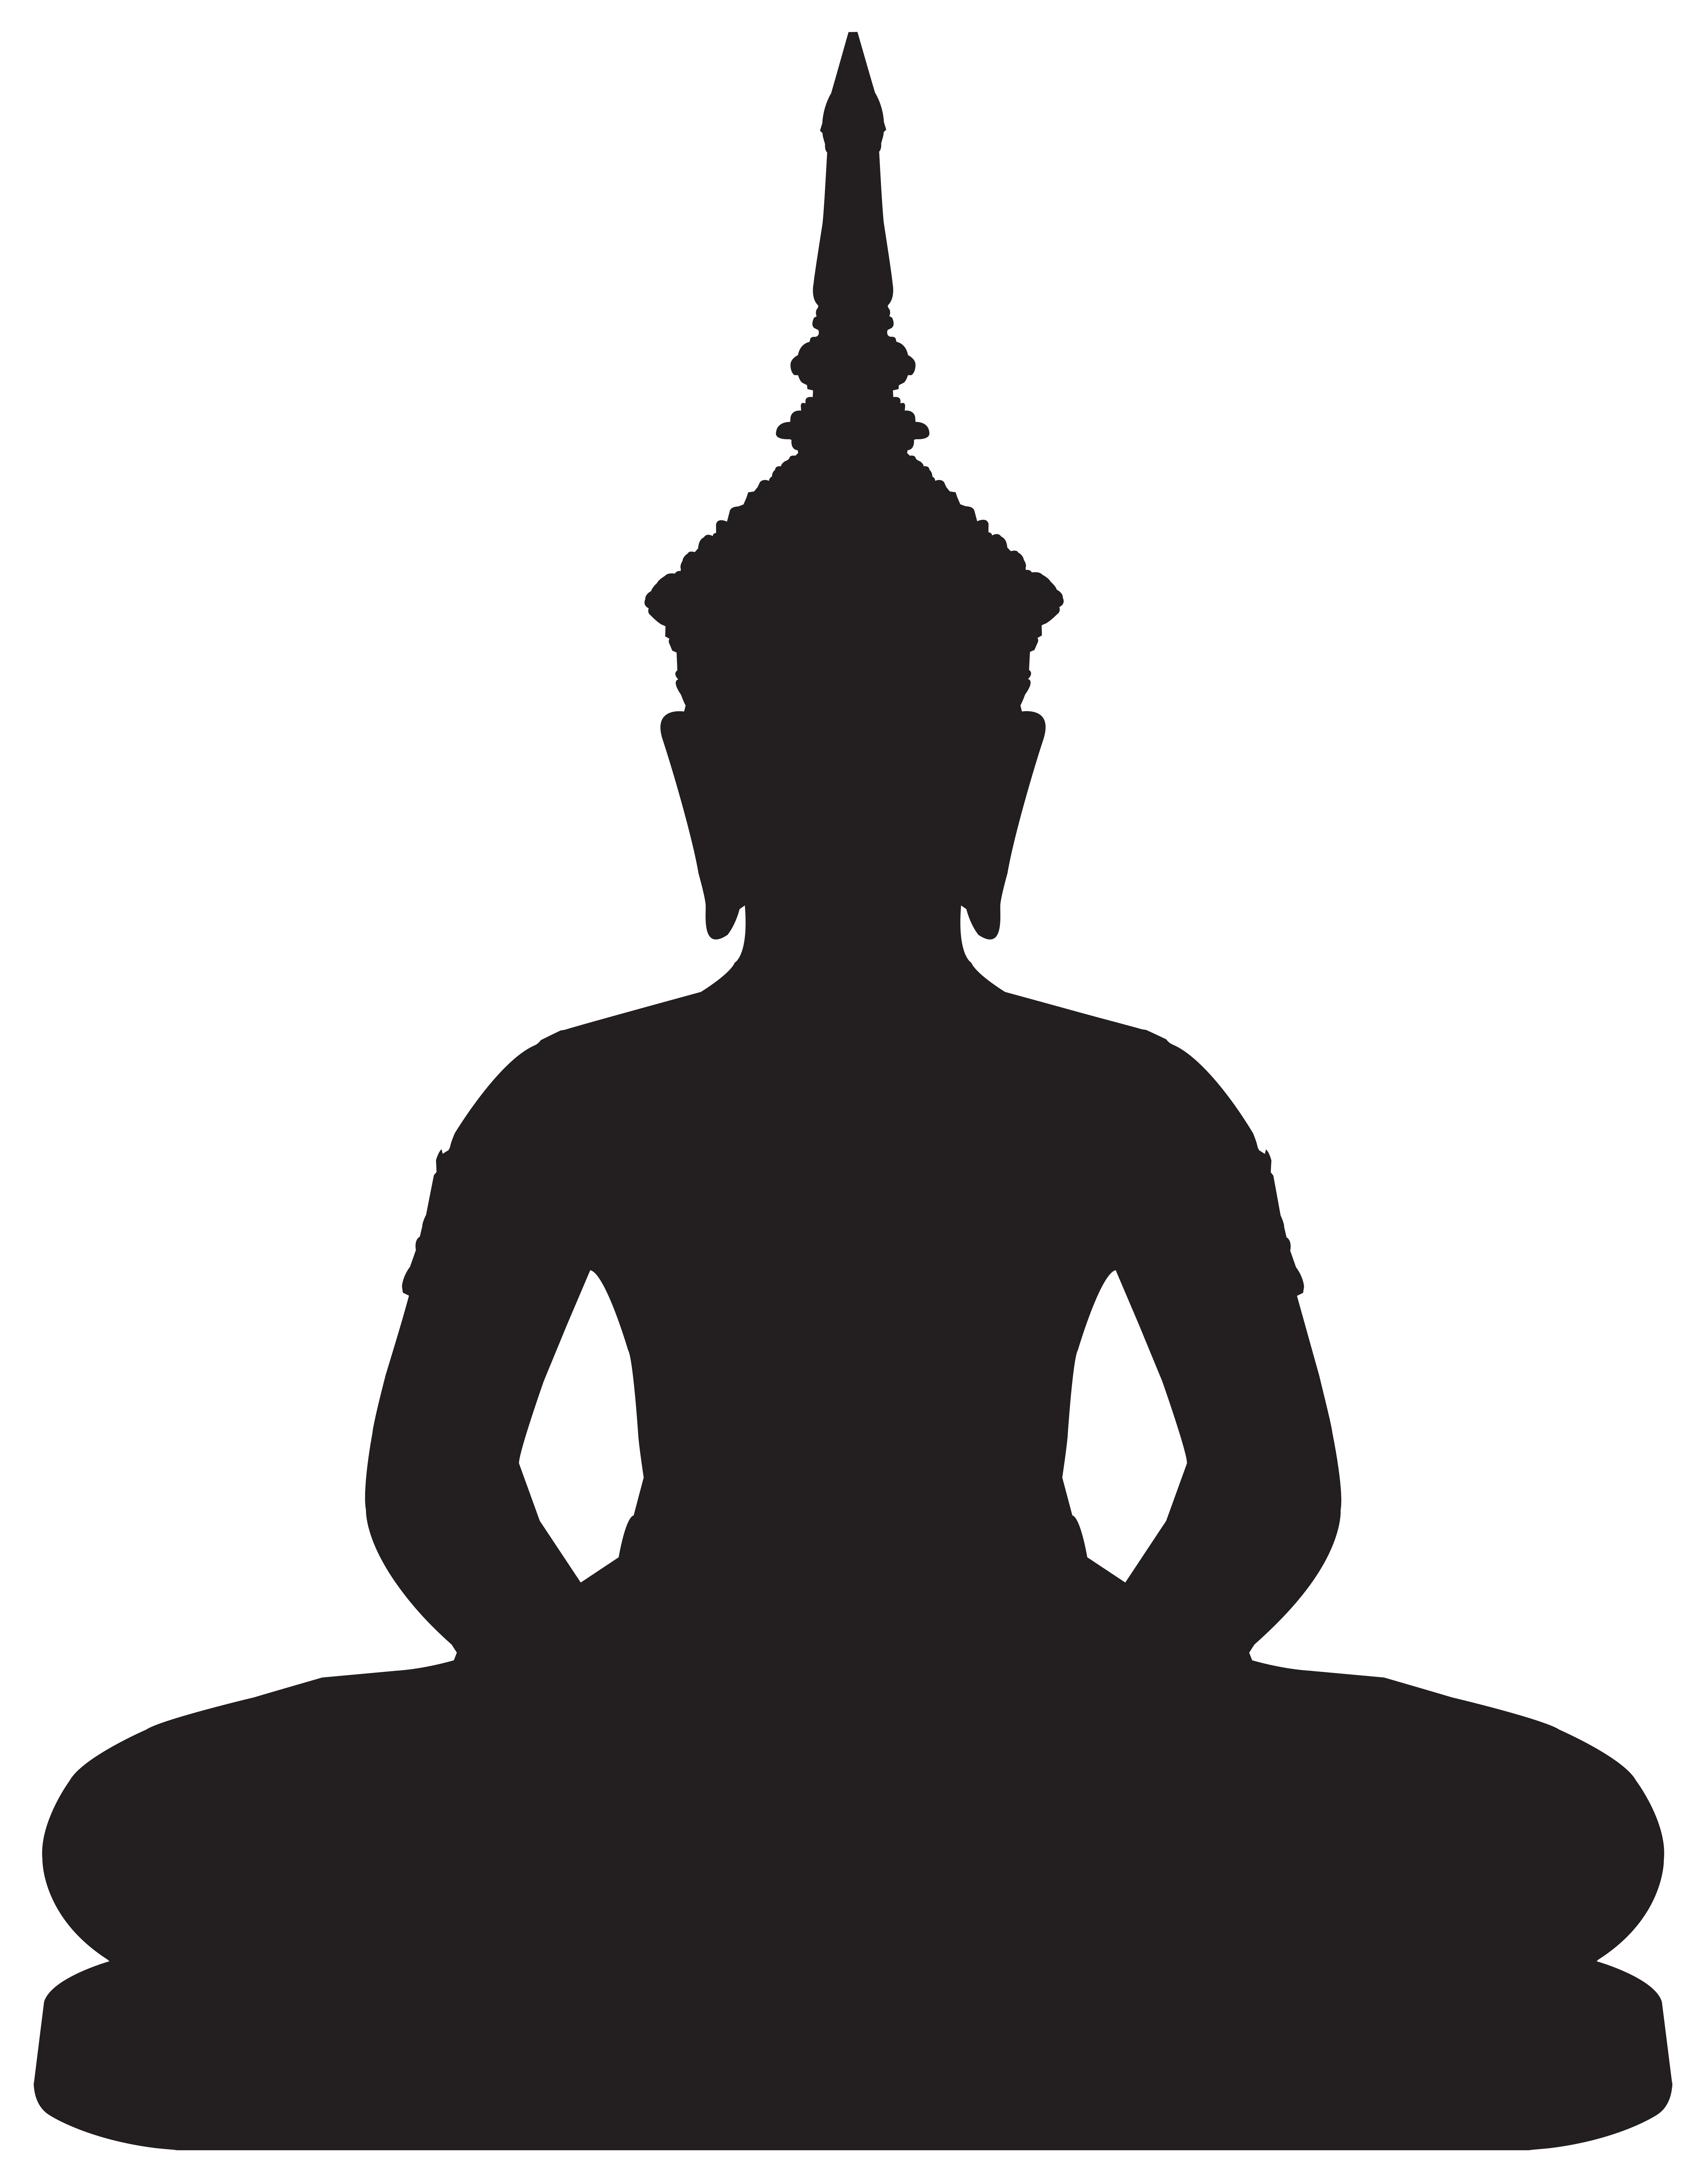 silute buddhist personals Are you interested in meeting vilnius buddhist singles if you are, then join our dating site registration is simple and membership is totally free just create your own personal.